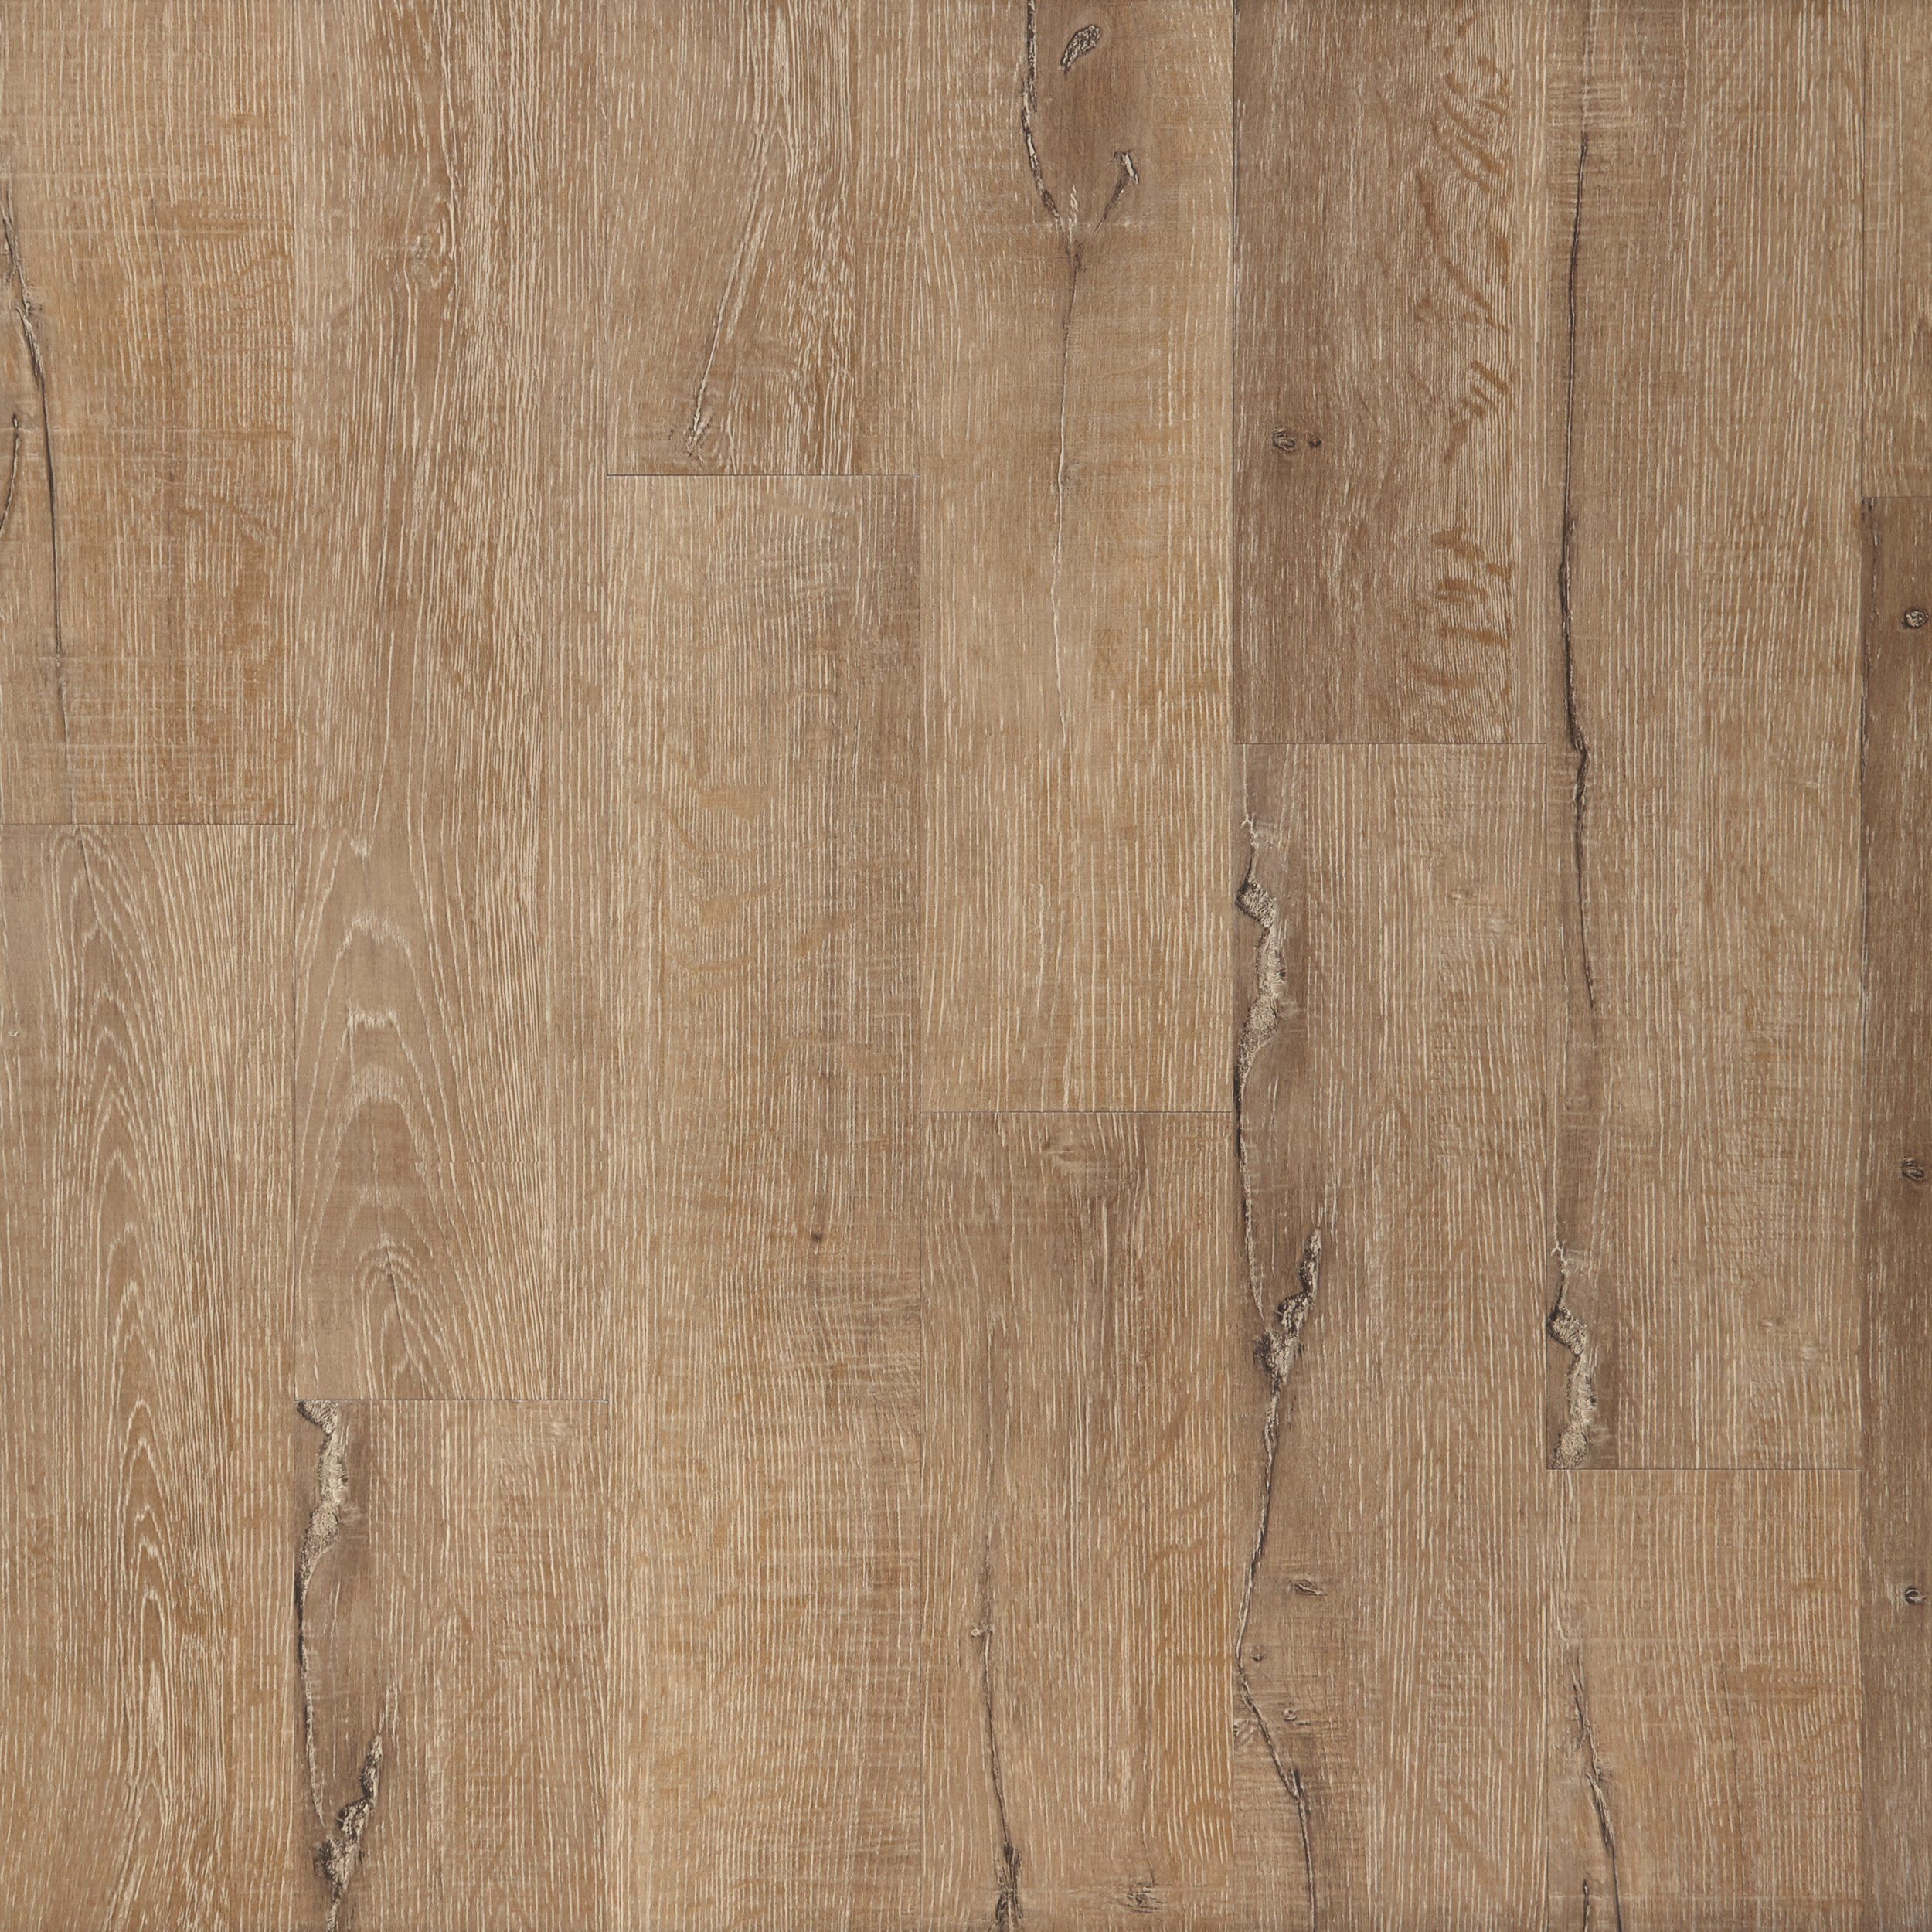 Forest Ridge Groutable Vinyl Plank Tile Luxury Vinyl Plank Luxury Vinyl Plank Flooring Vinyl Plank